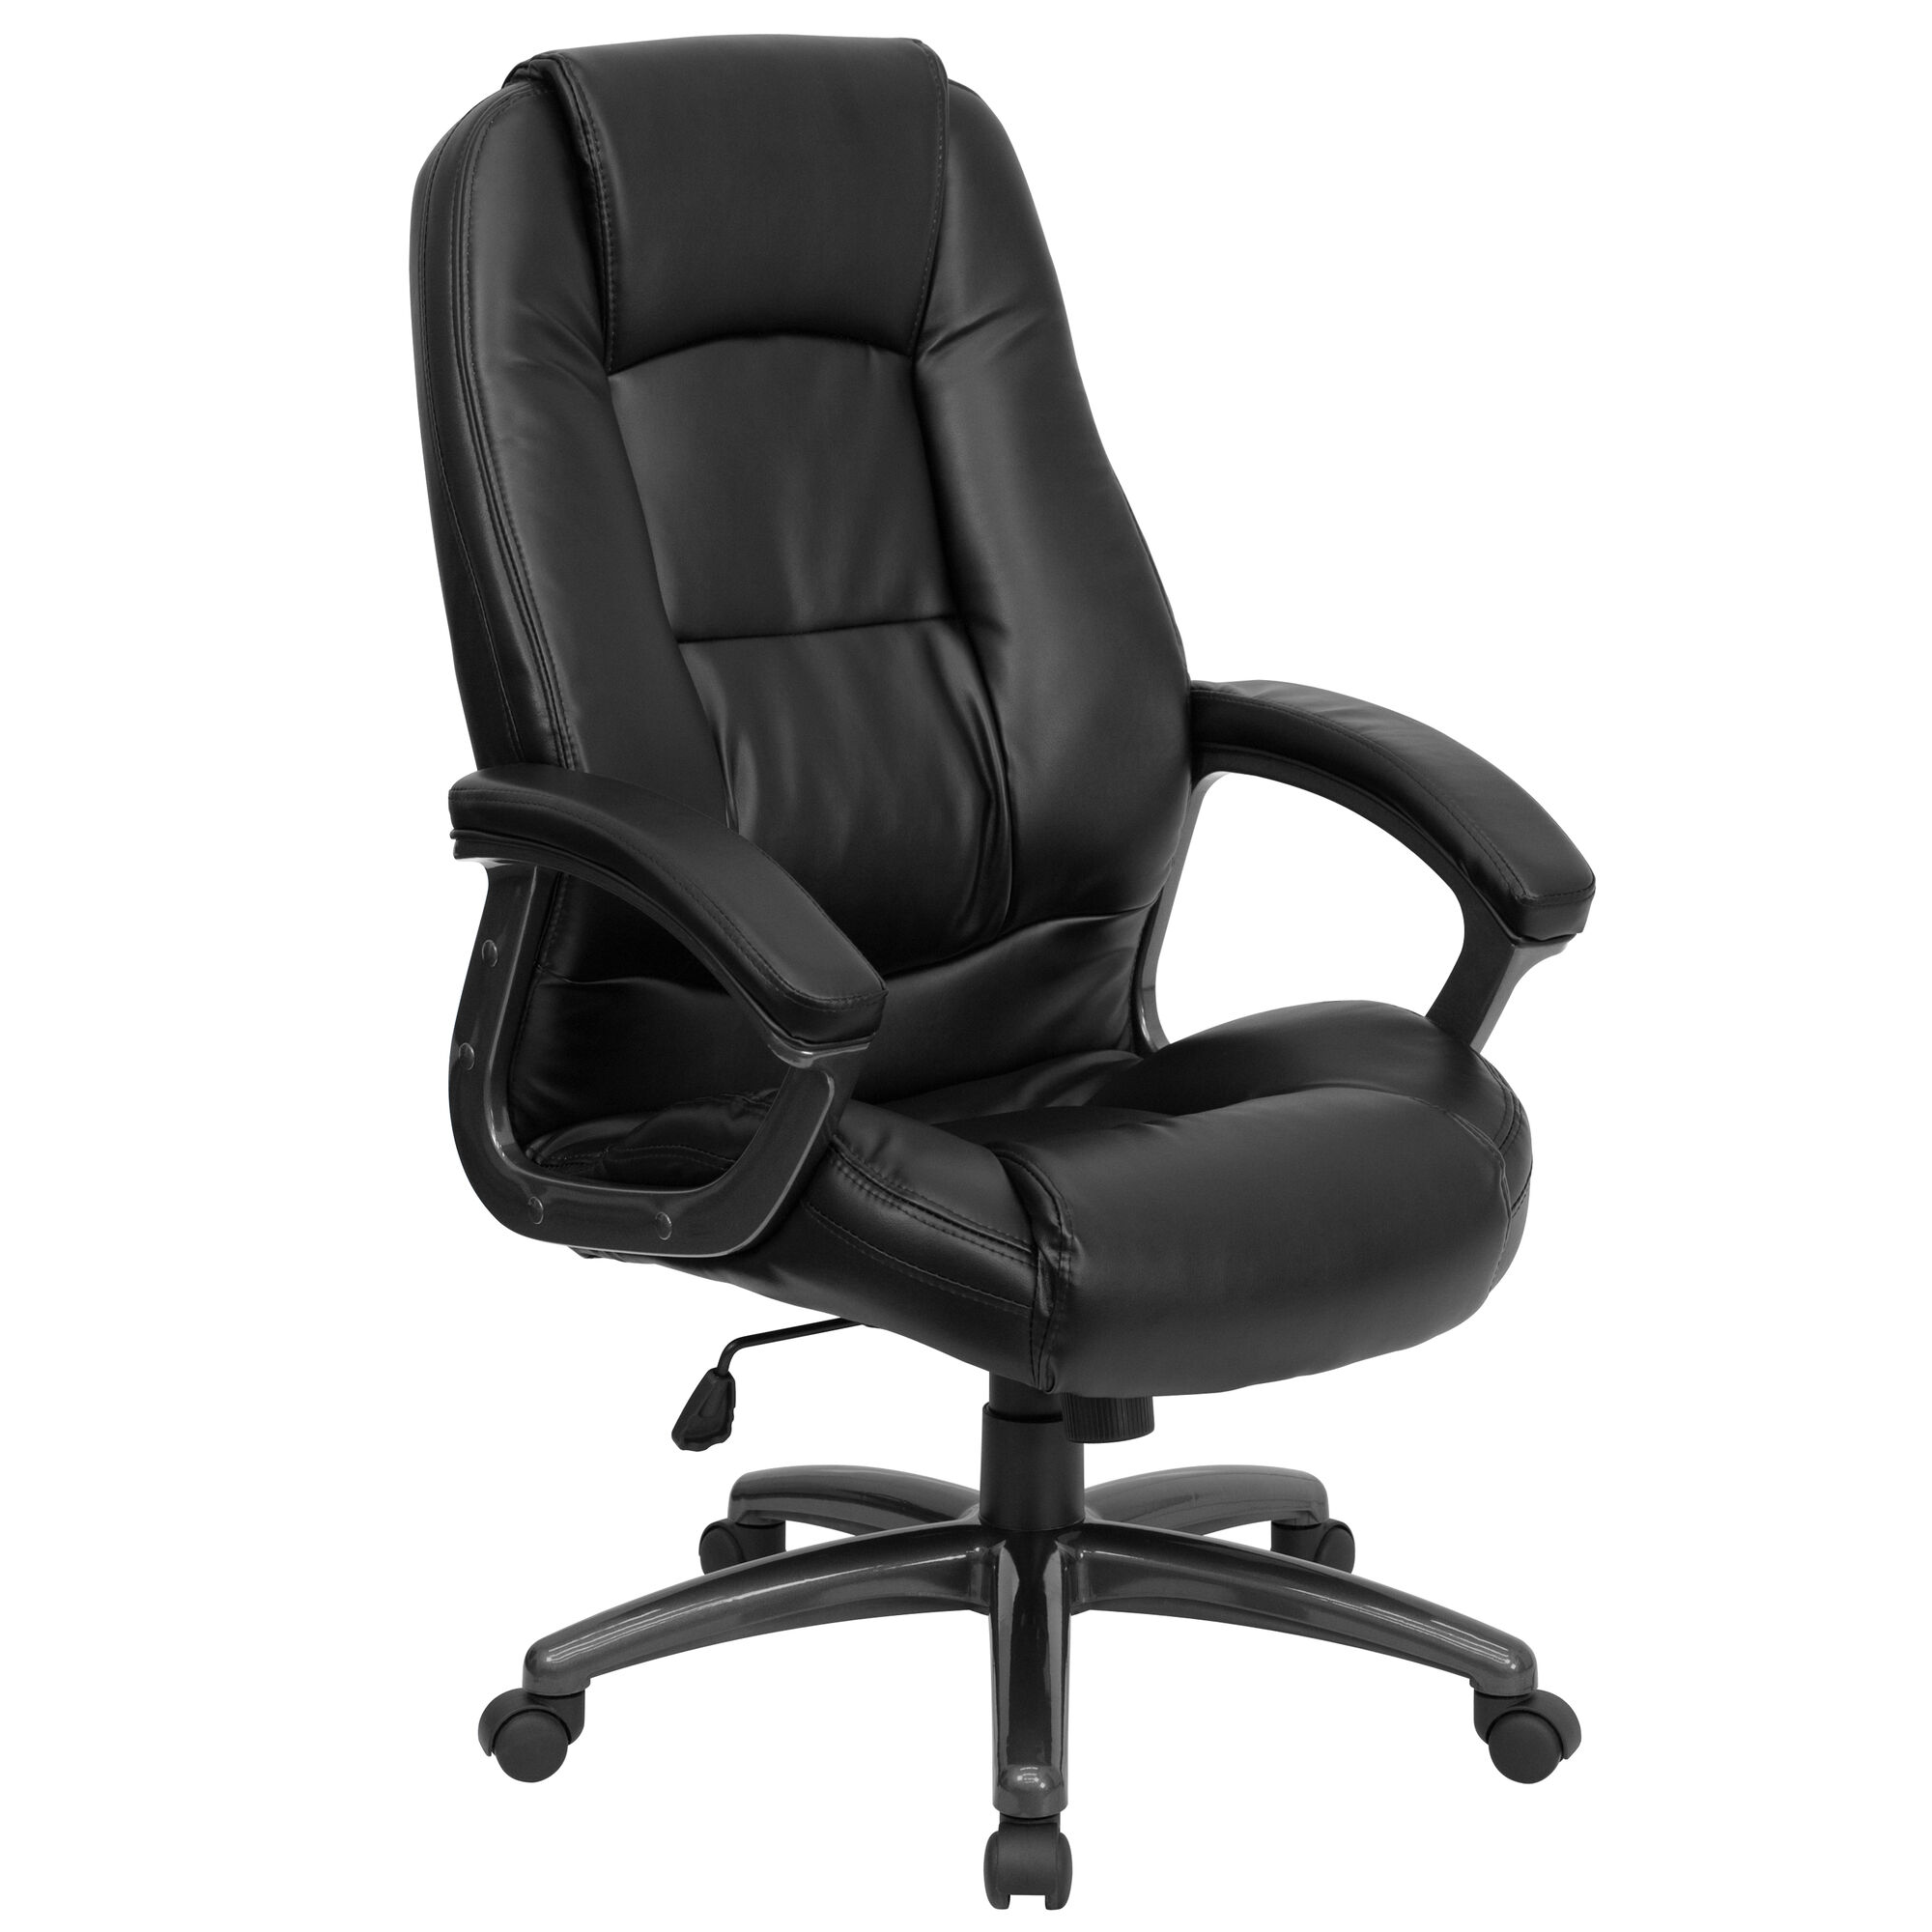 Images our high back black leather executive swivel ergonomic office chair